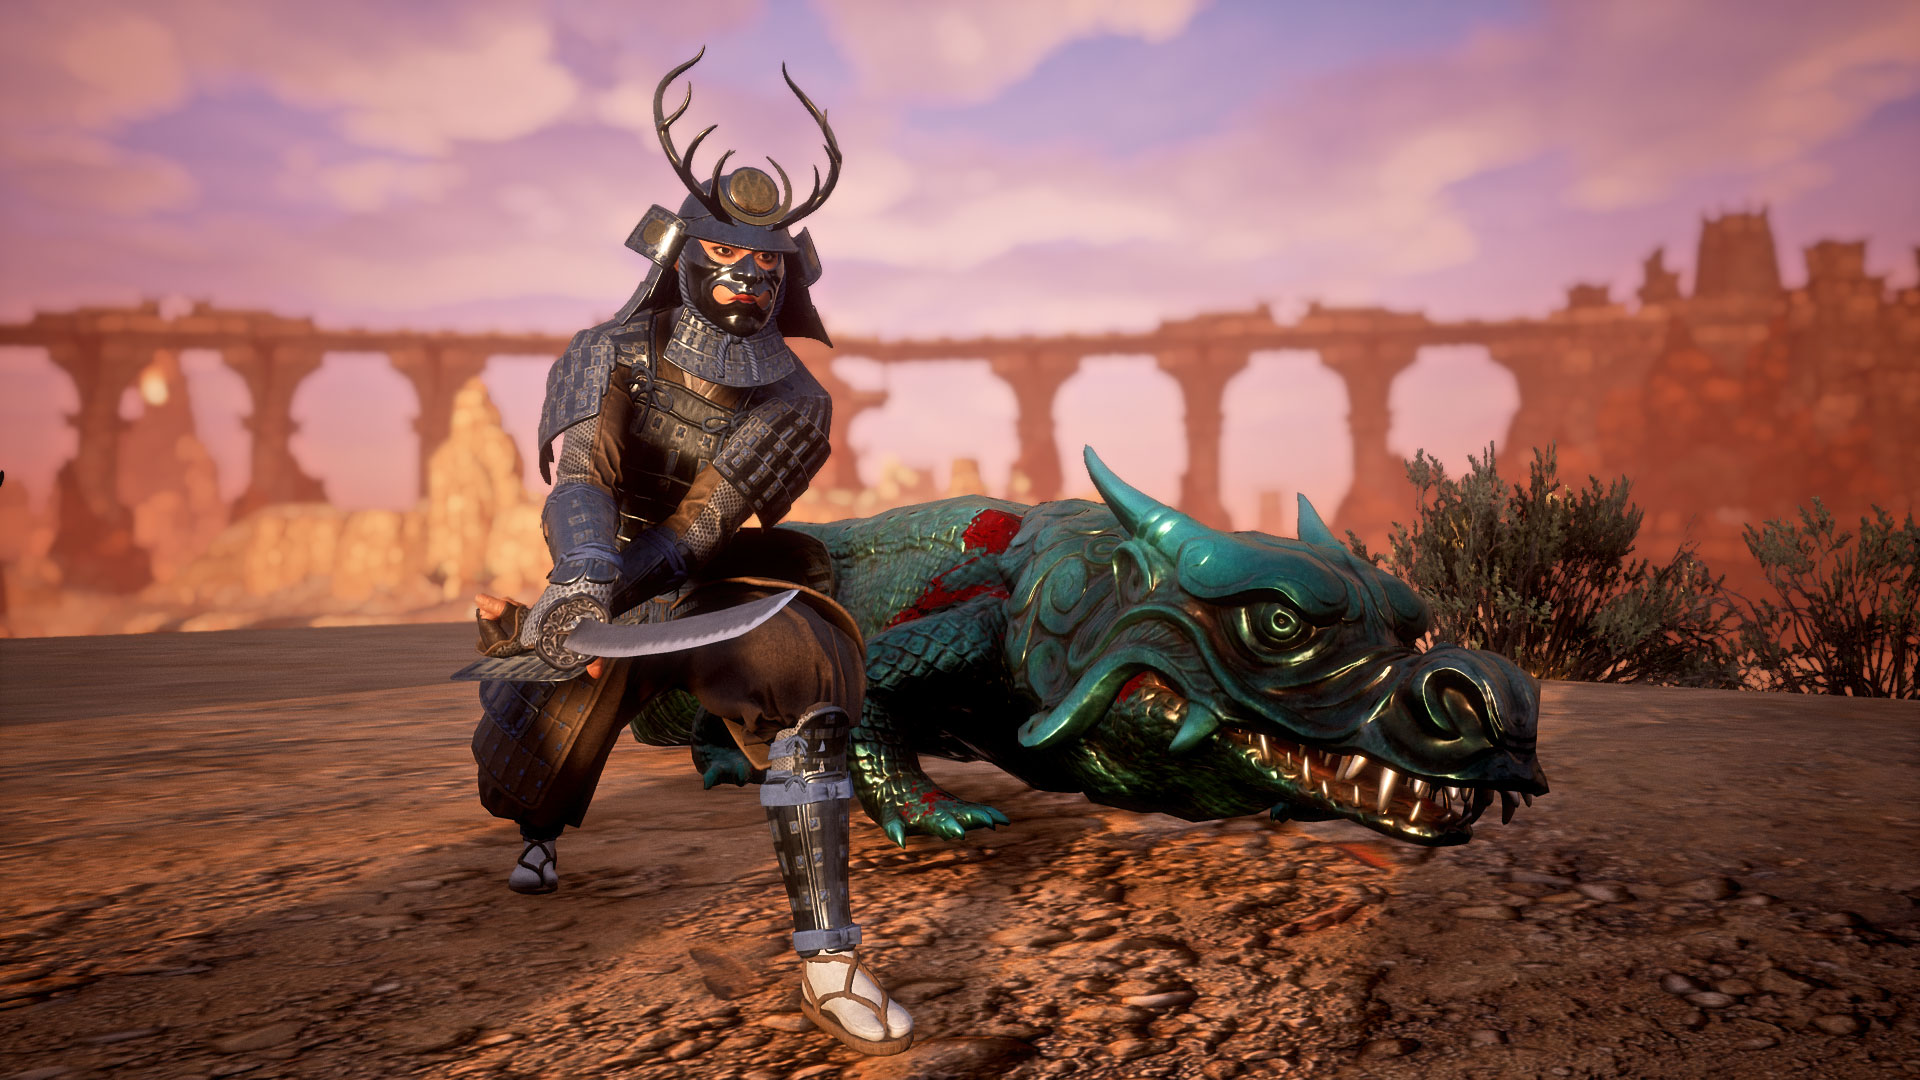 Weekly Community Newsletter: Bow Improvements and Katanas